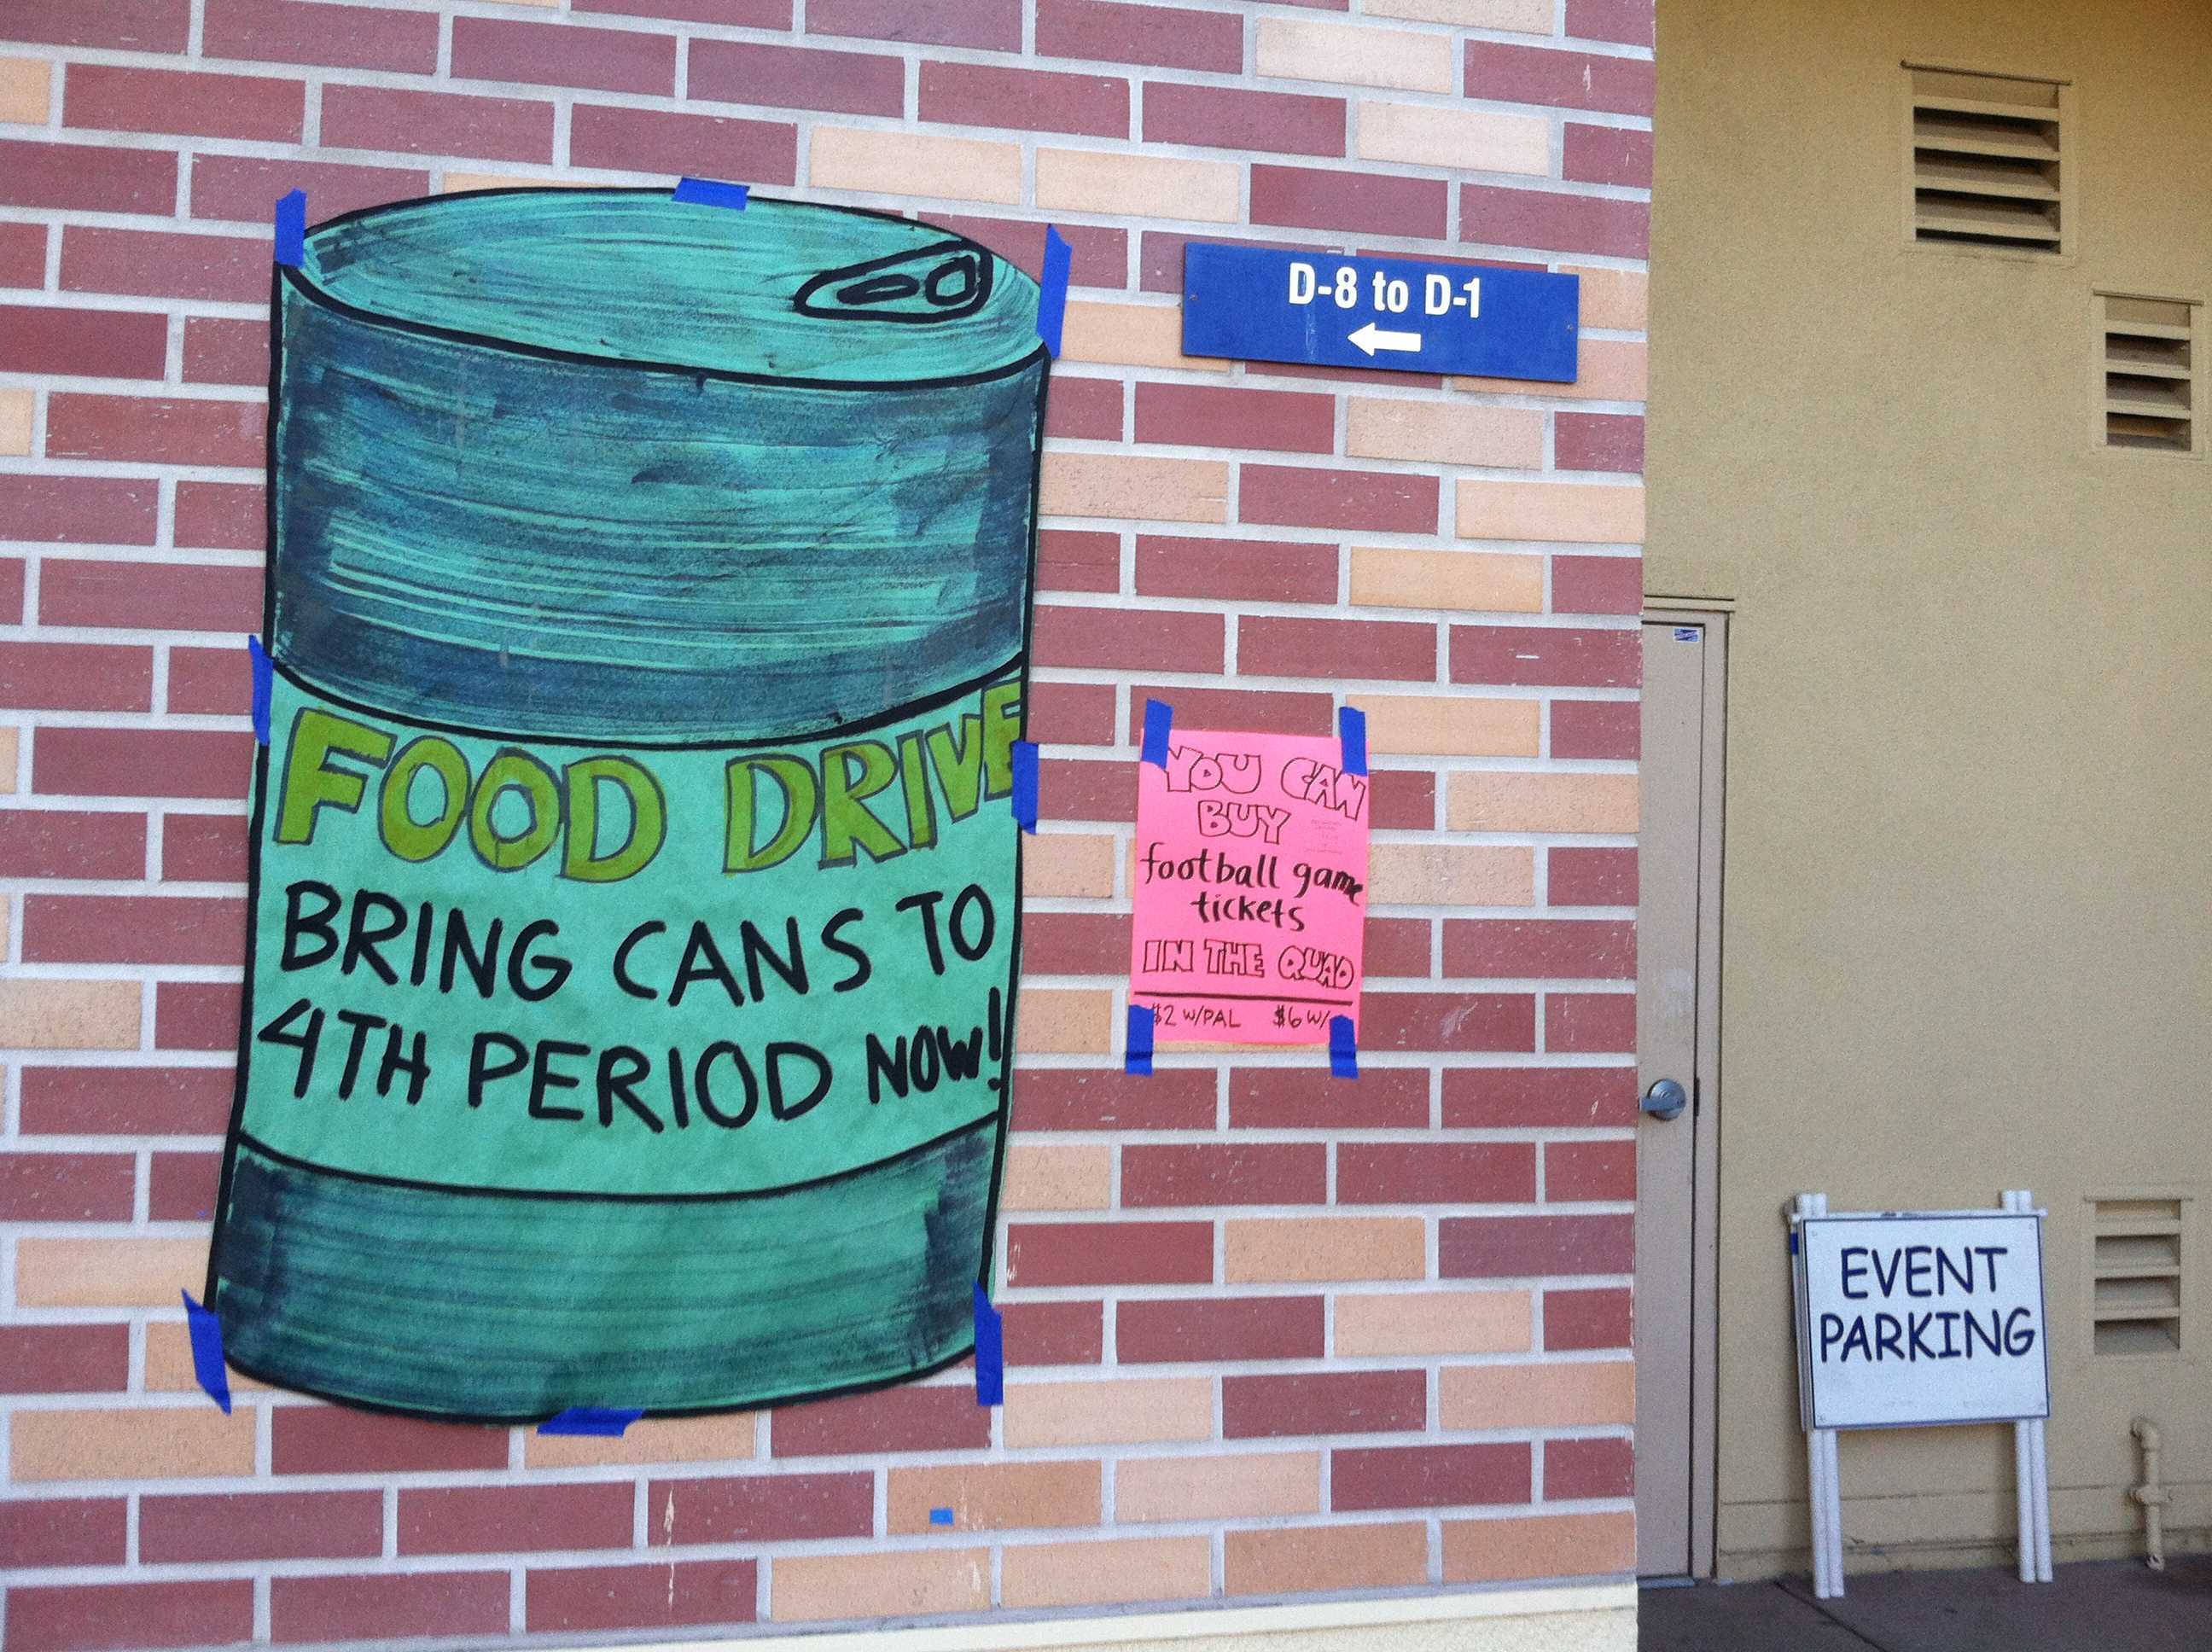 The food drive is here again, and students are eager to donate.